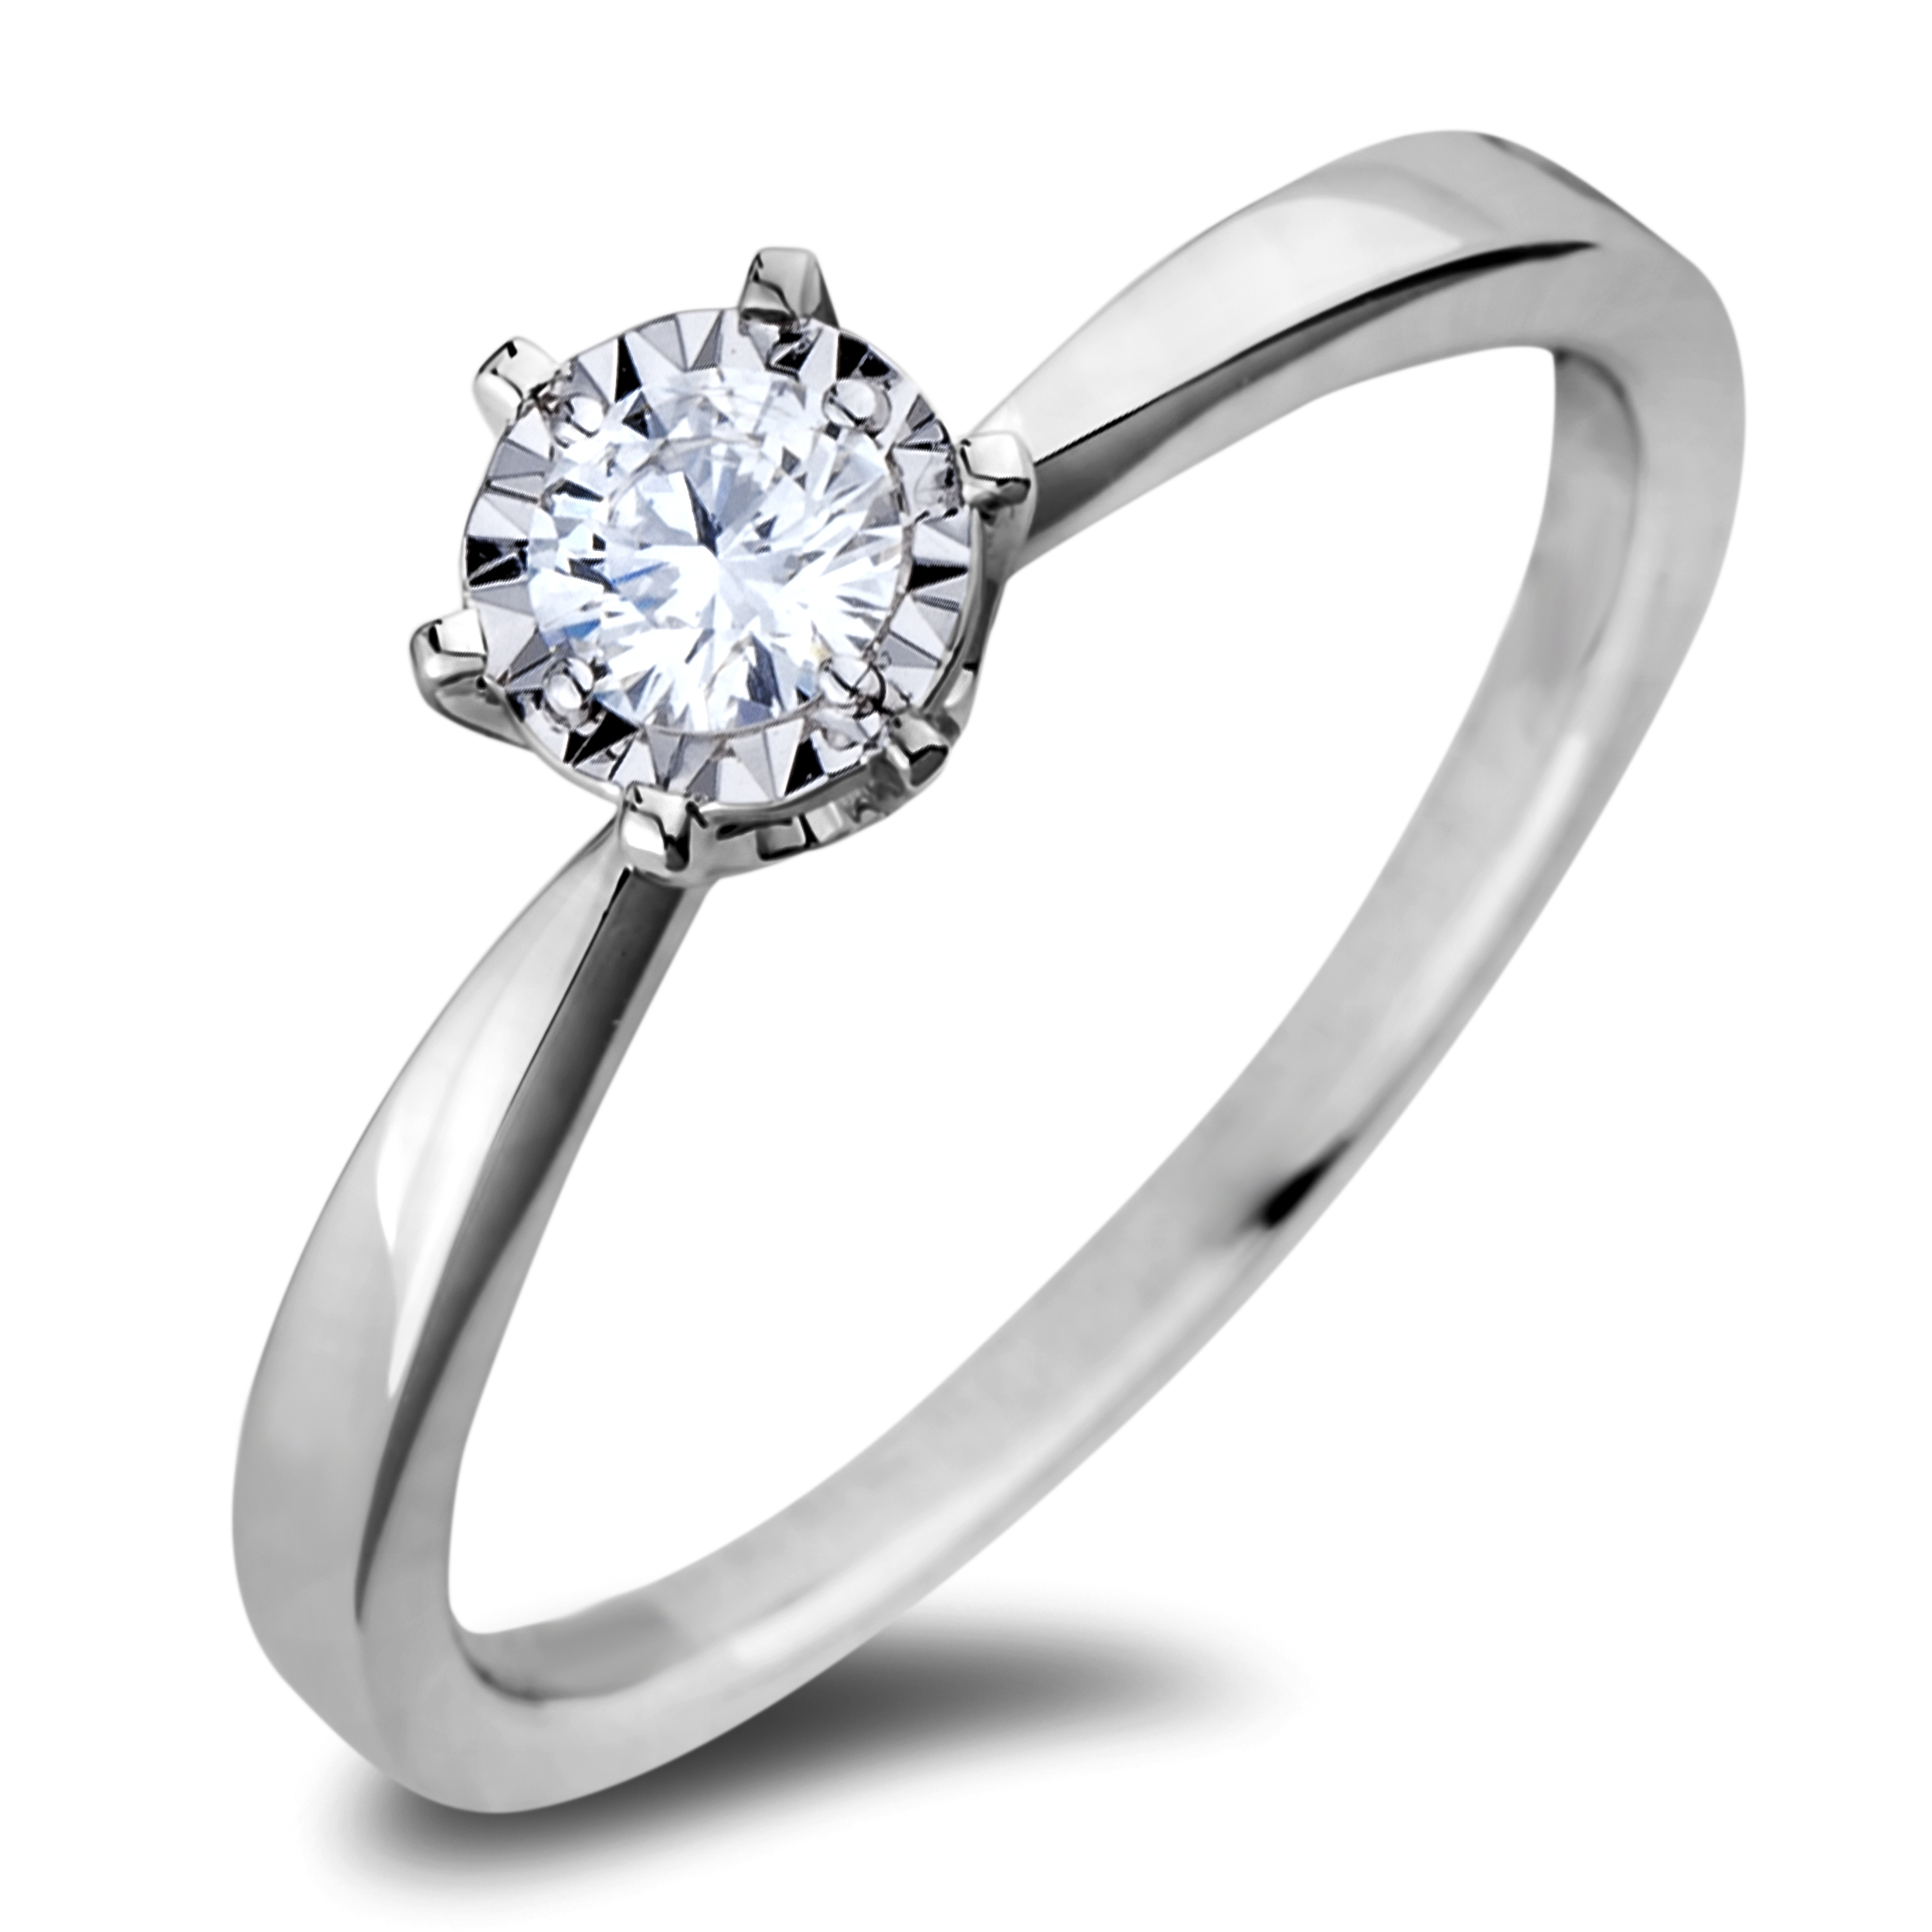 Diamond Solitaire Rings JSL-AFCR0103020 (Rings)